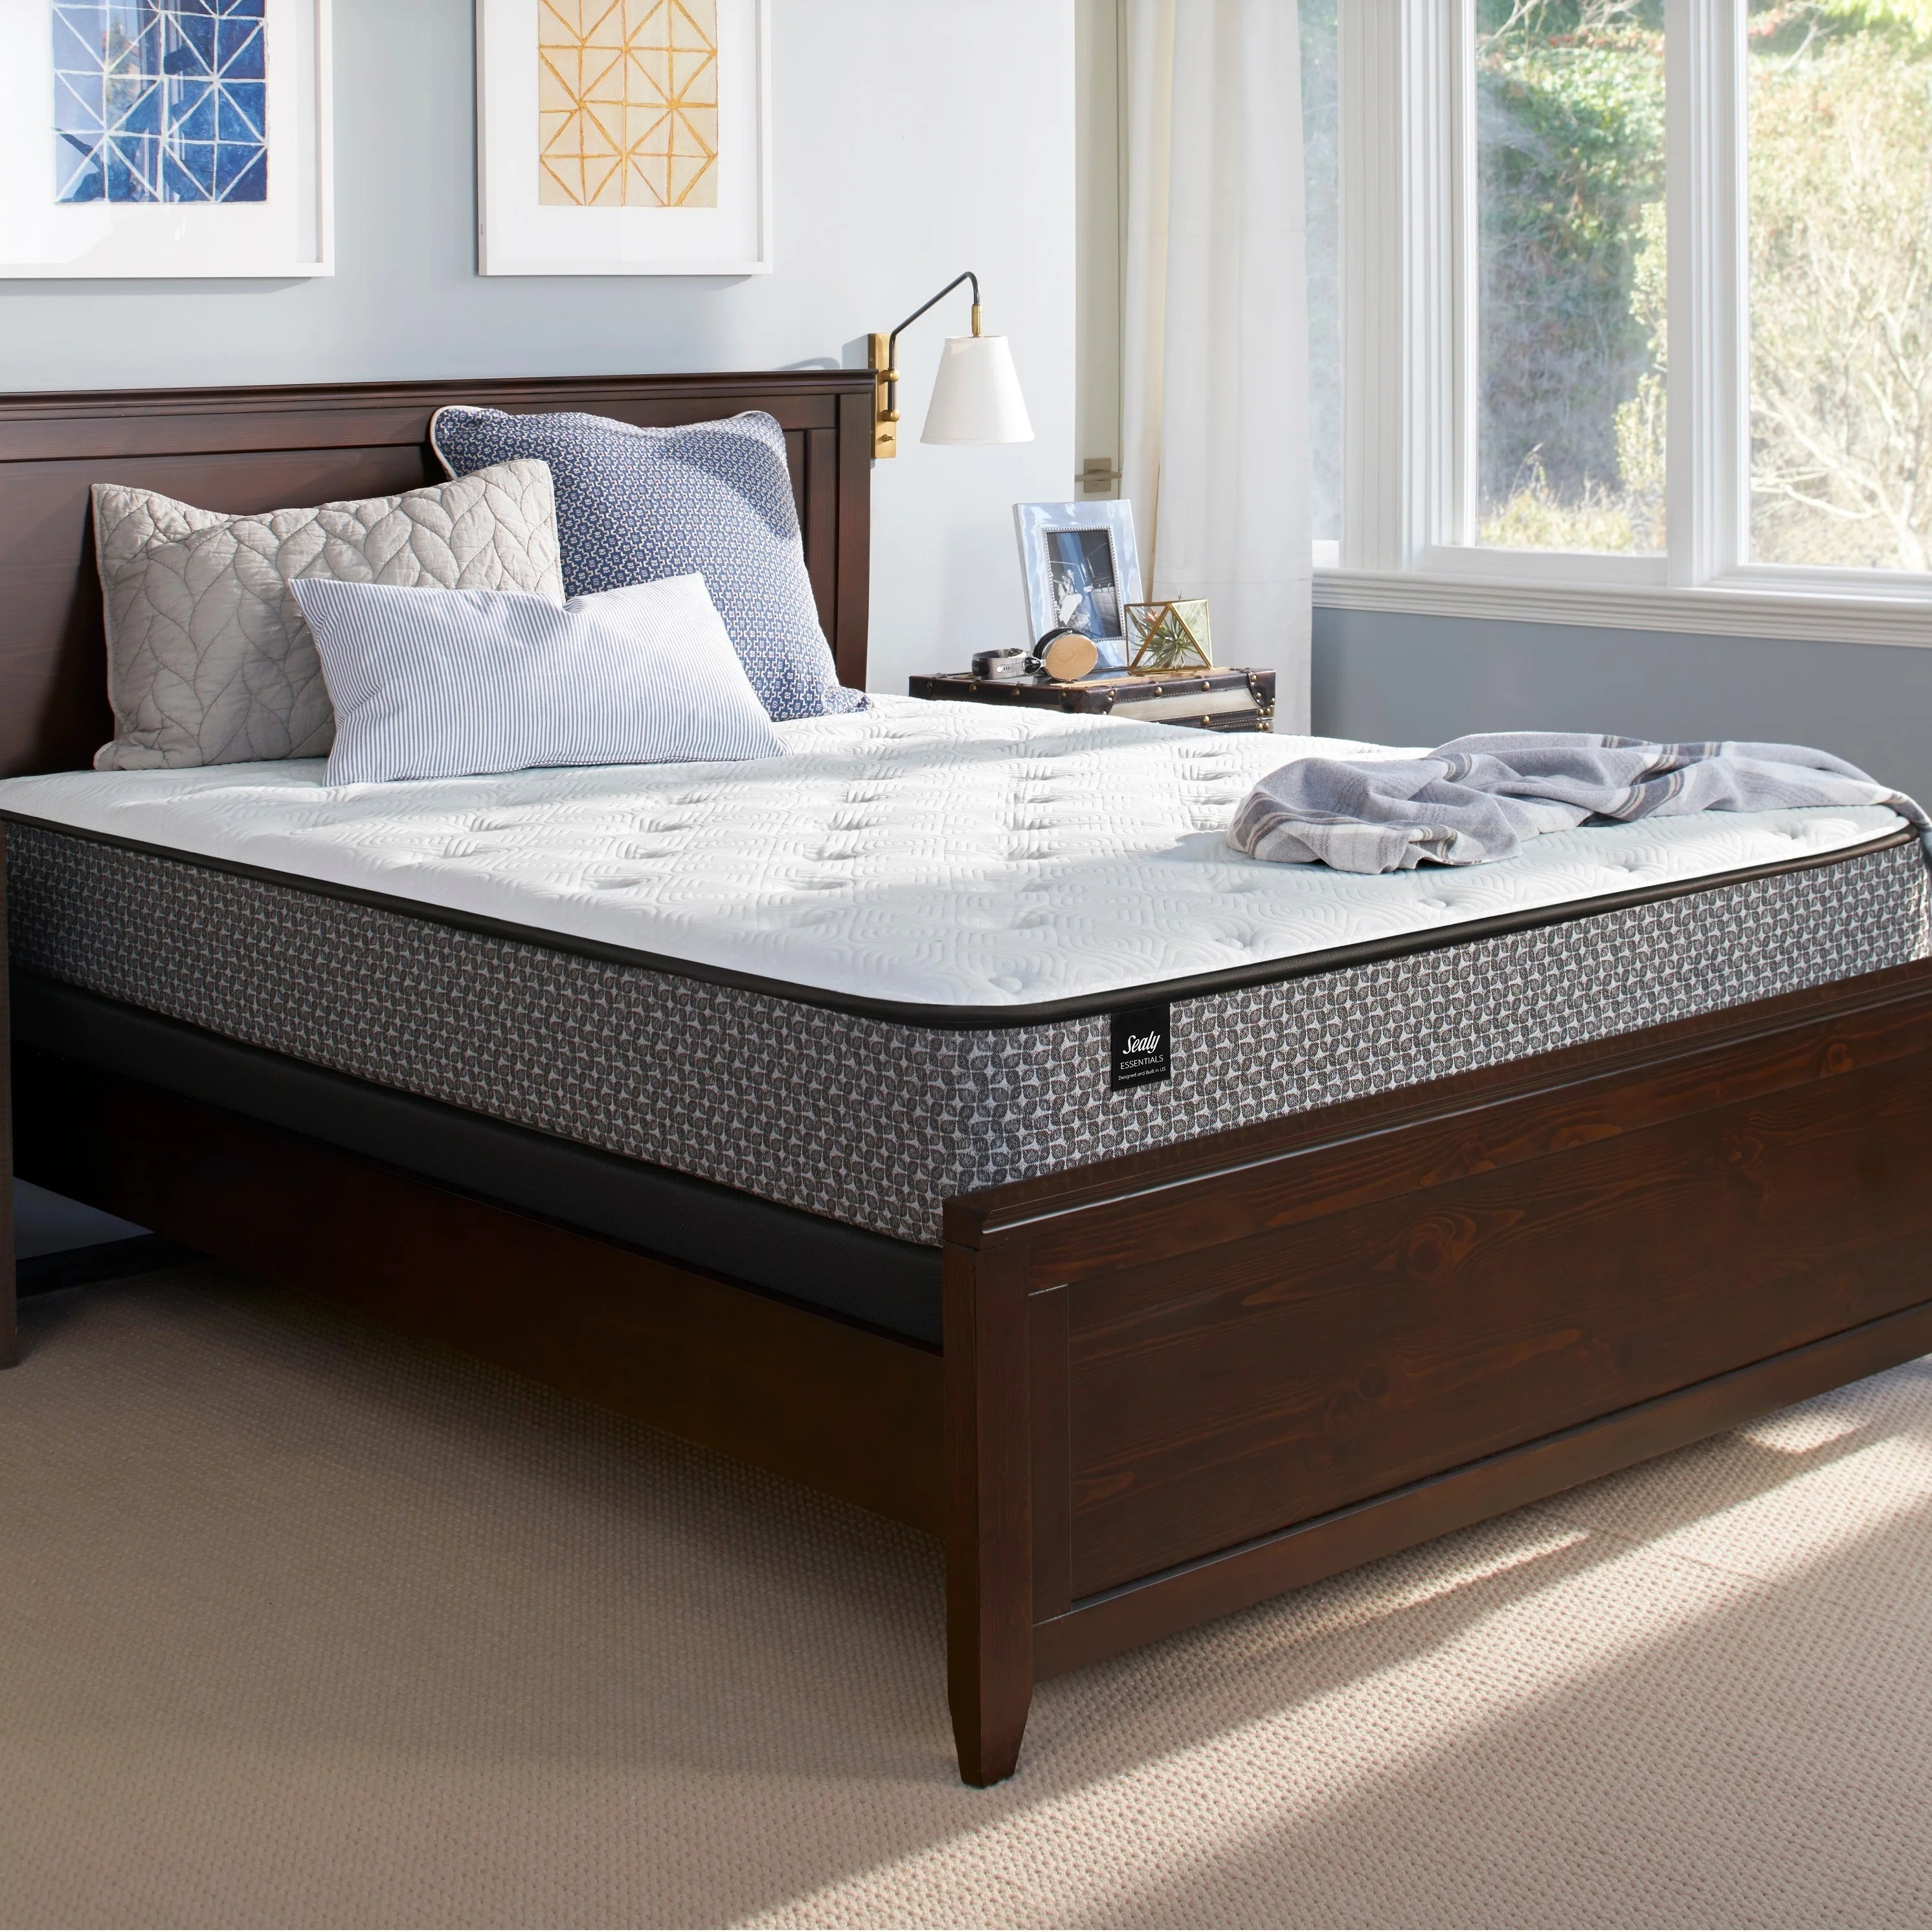 King Bed Ensemble Base Only Buy King Size Sealy Mattresses Online At Overstock Our Best